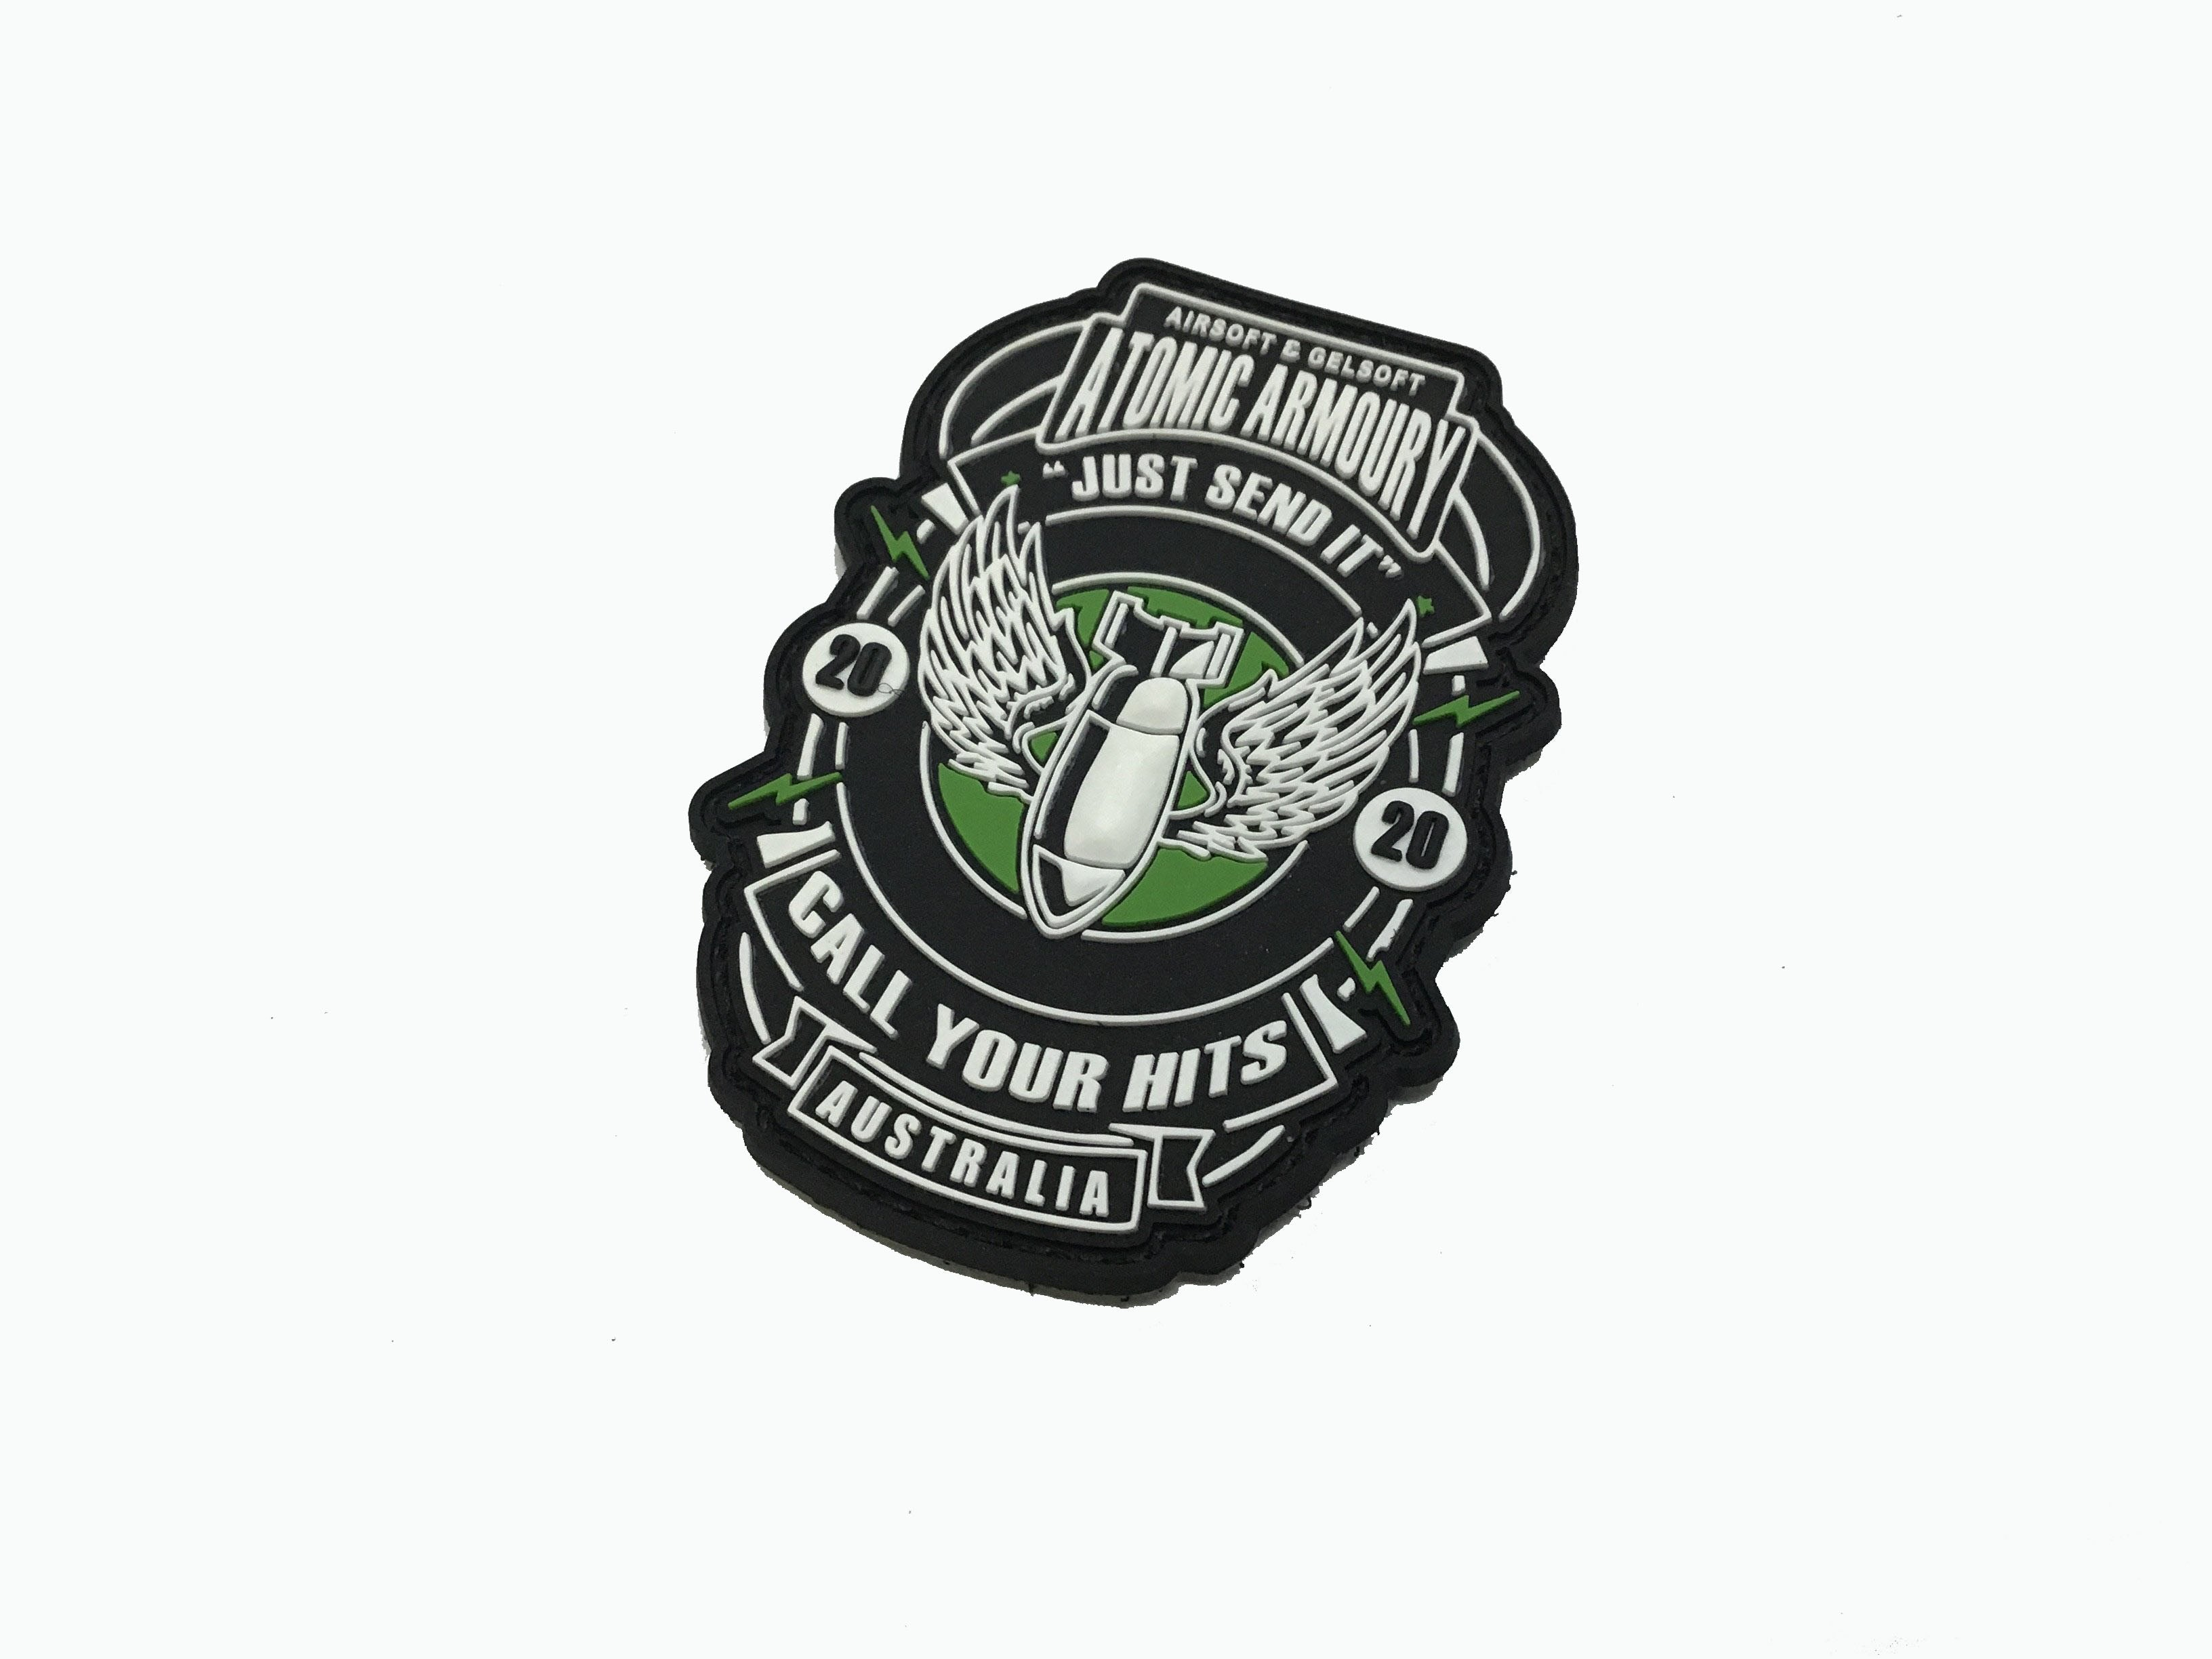 Atomic Armoury Send It Velcro Patch - Command Elite Hobbies